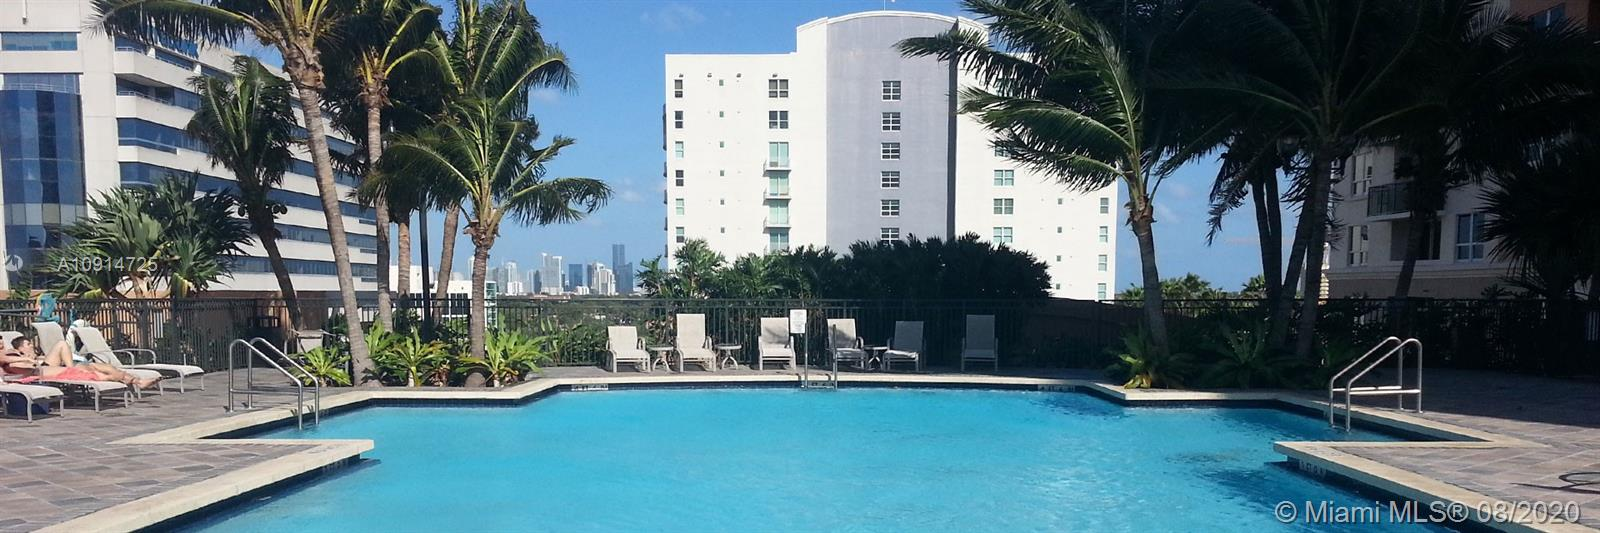 3232 Coral way-401 miami-fl-33145-a10914725-Pic27